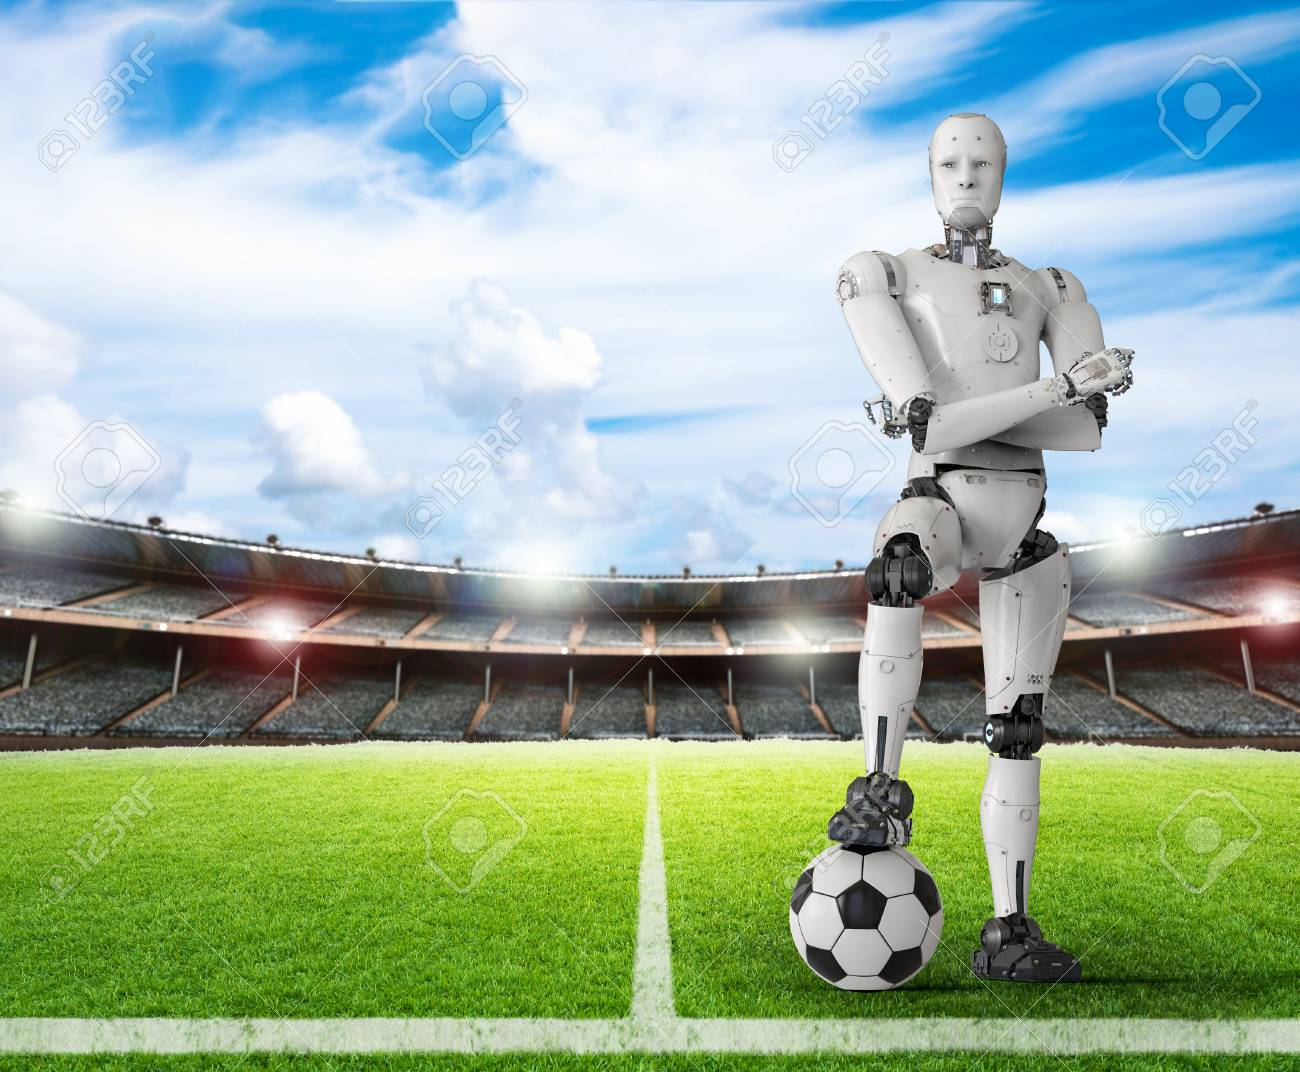 3d rendering humanoid robot with soccer ball - 84567876